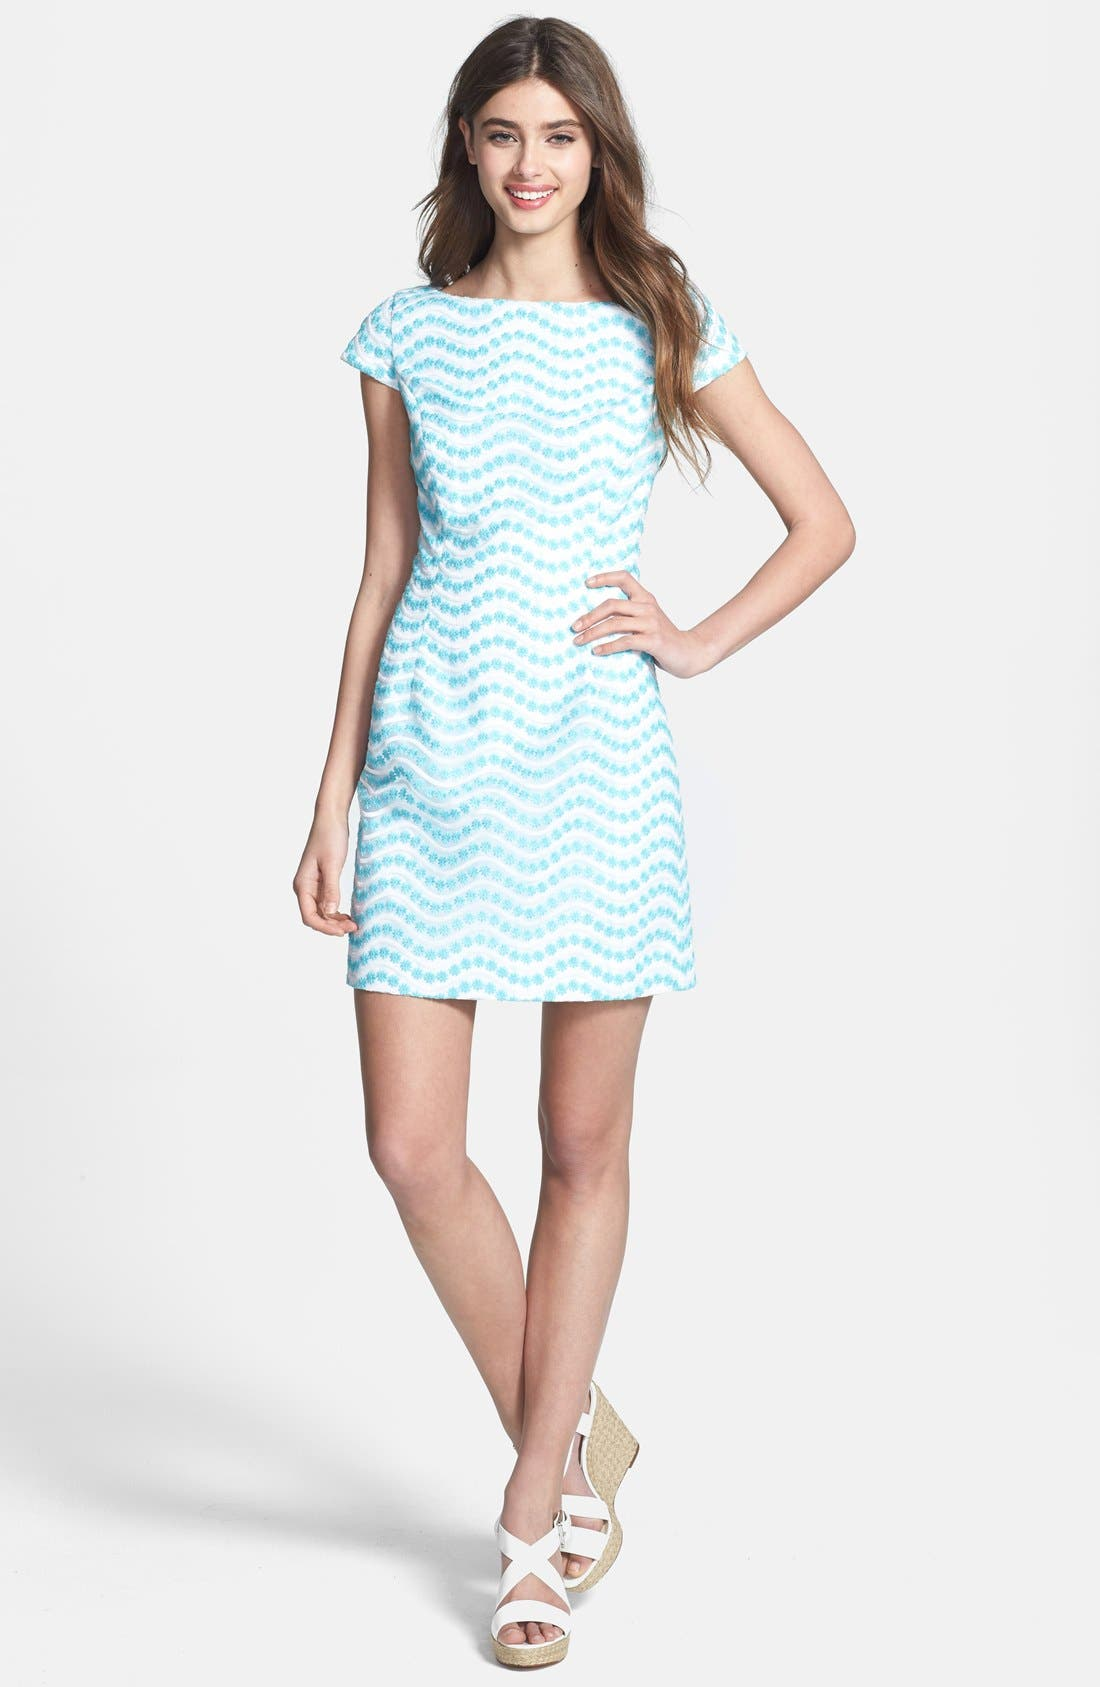 Alternate Image 1 Selected - Lilly Pulitzer® 'Piper' Cutout Back Embroidered Organza Shift Dress